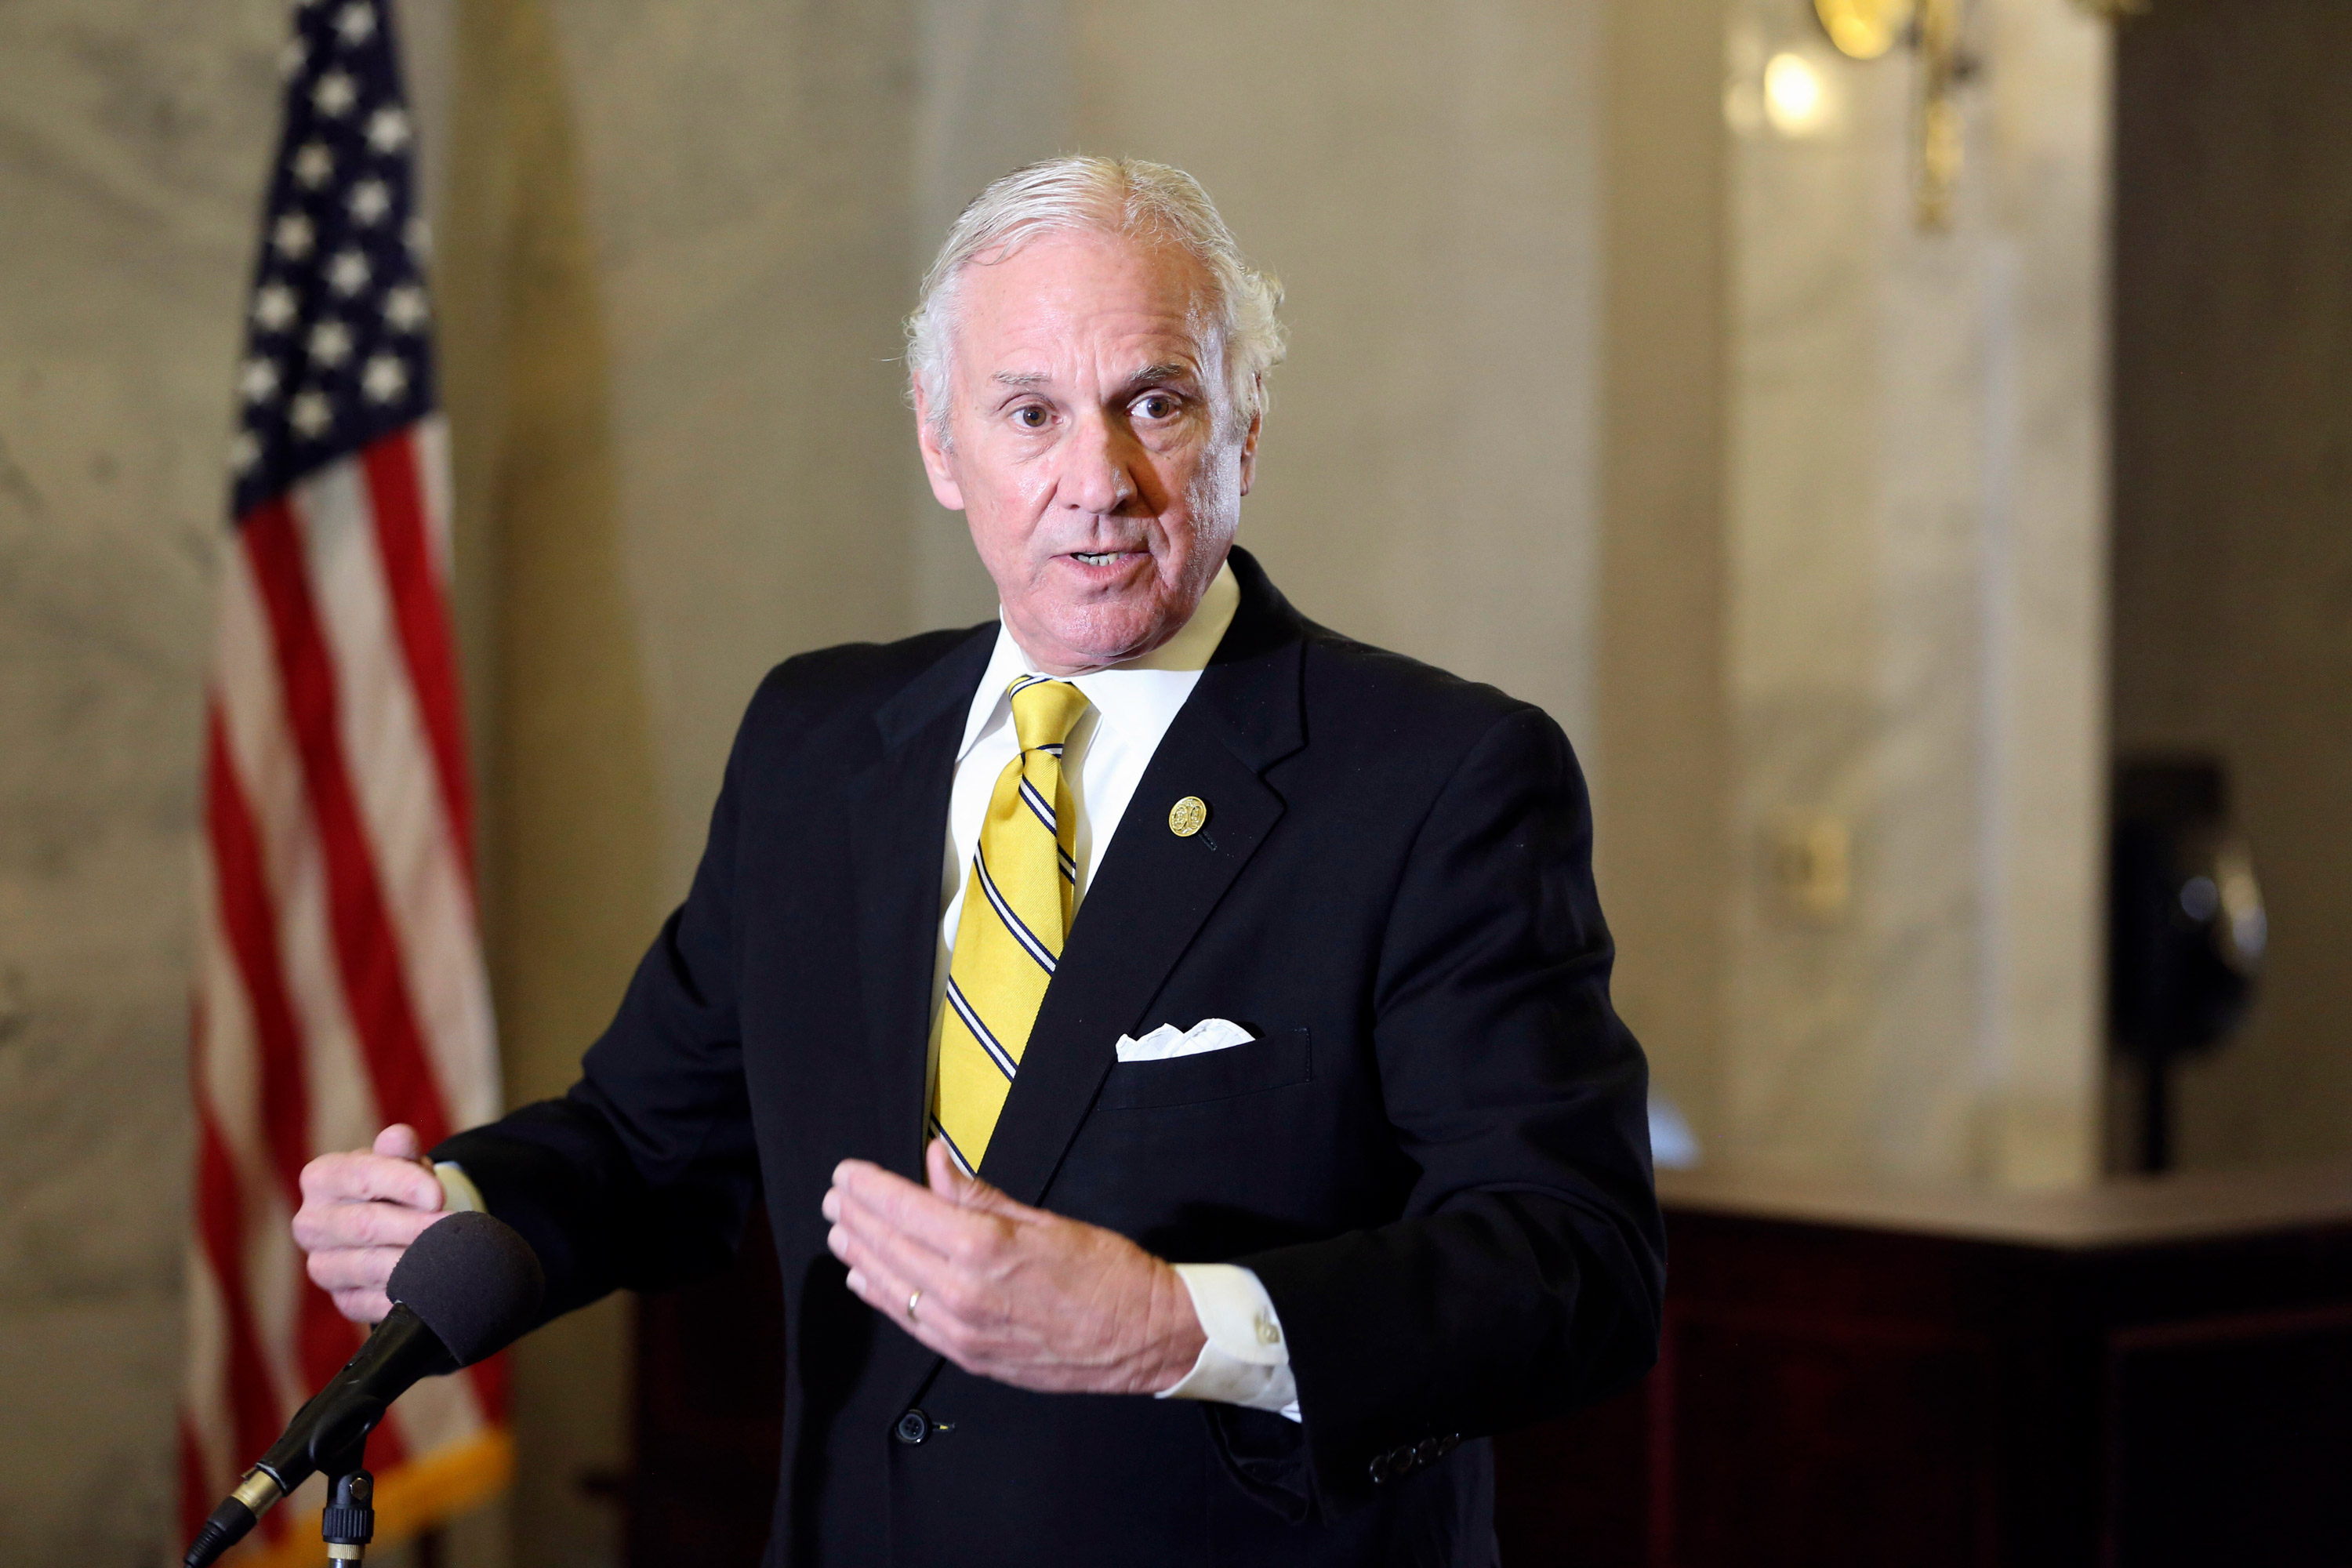 South Carolina Gov. Henry McMaster speaks during a news conference on January 27 in Columbia, South Carolina.